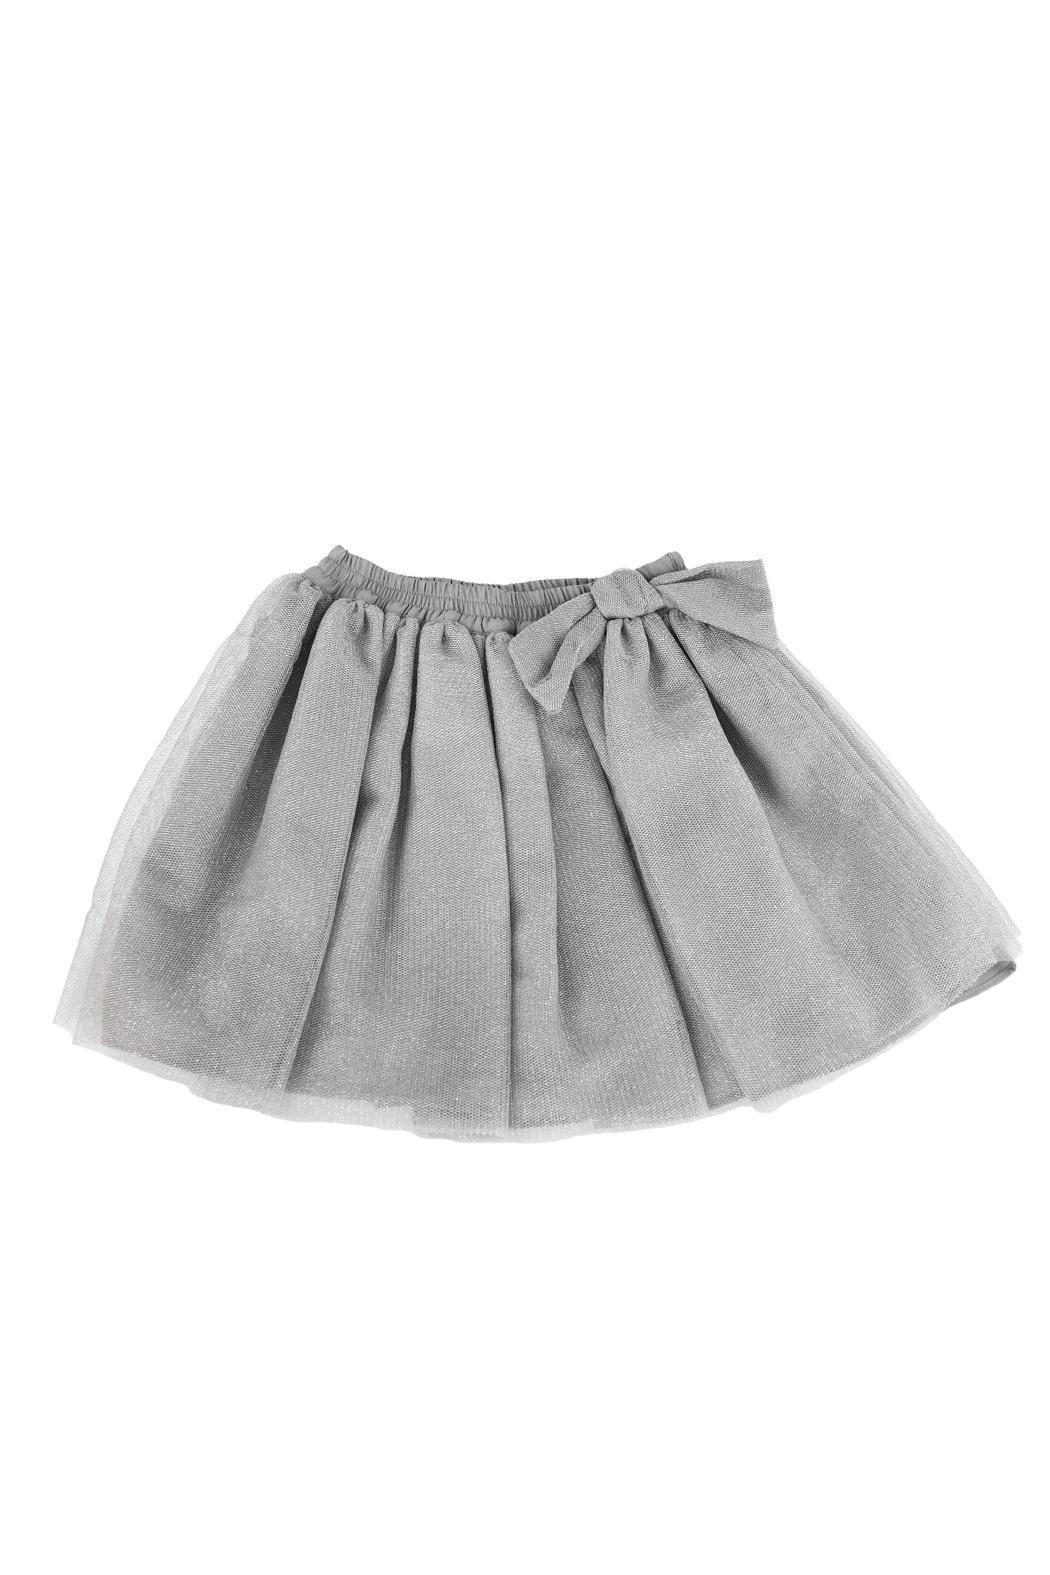 Malvi & Co. Silver Tulle Skirt - Main Image